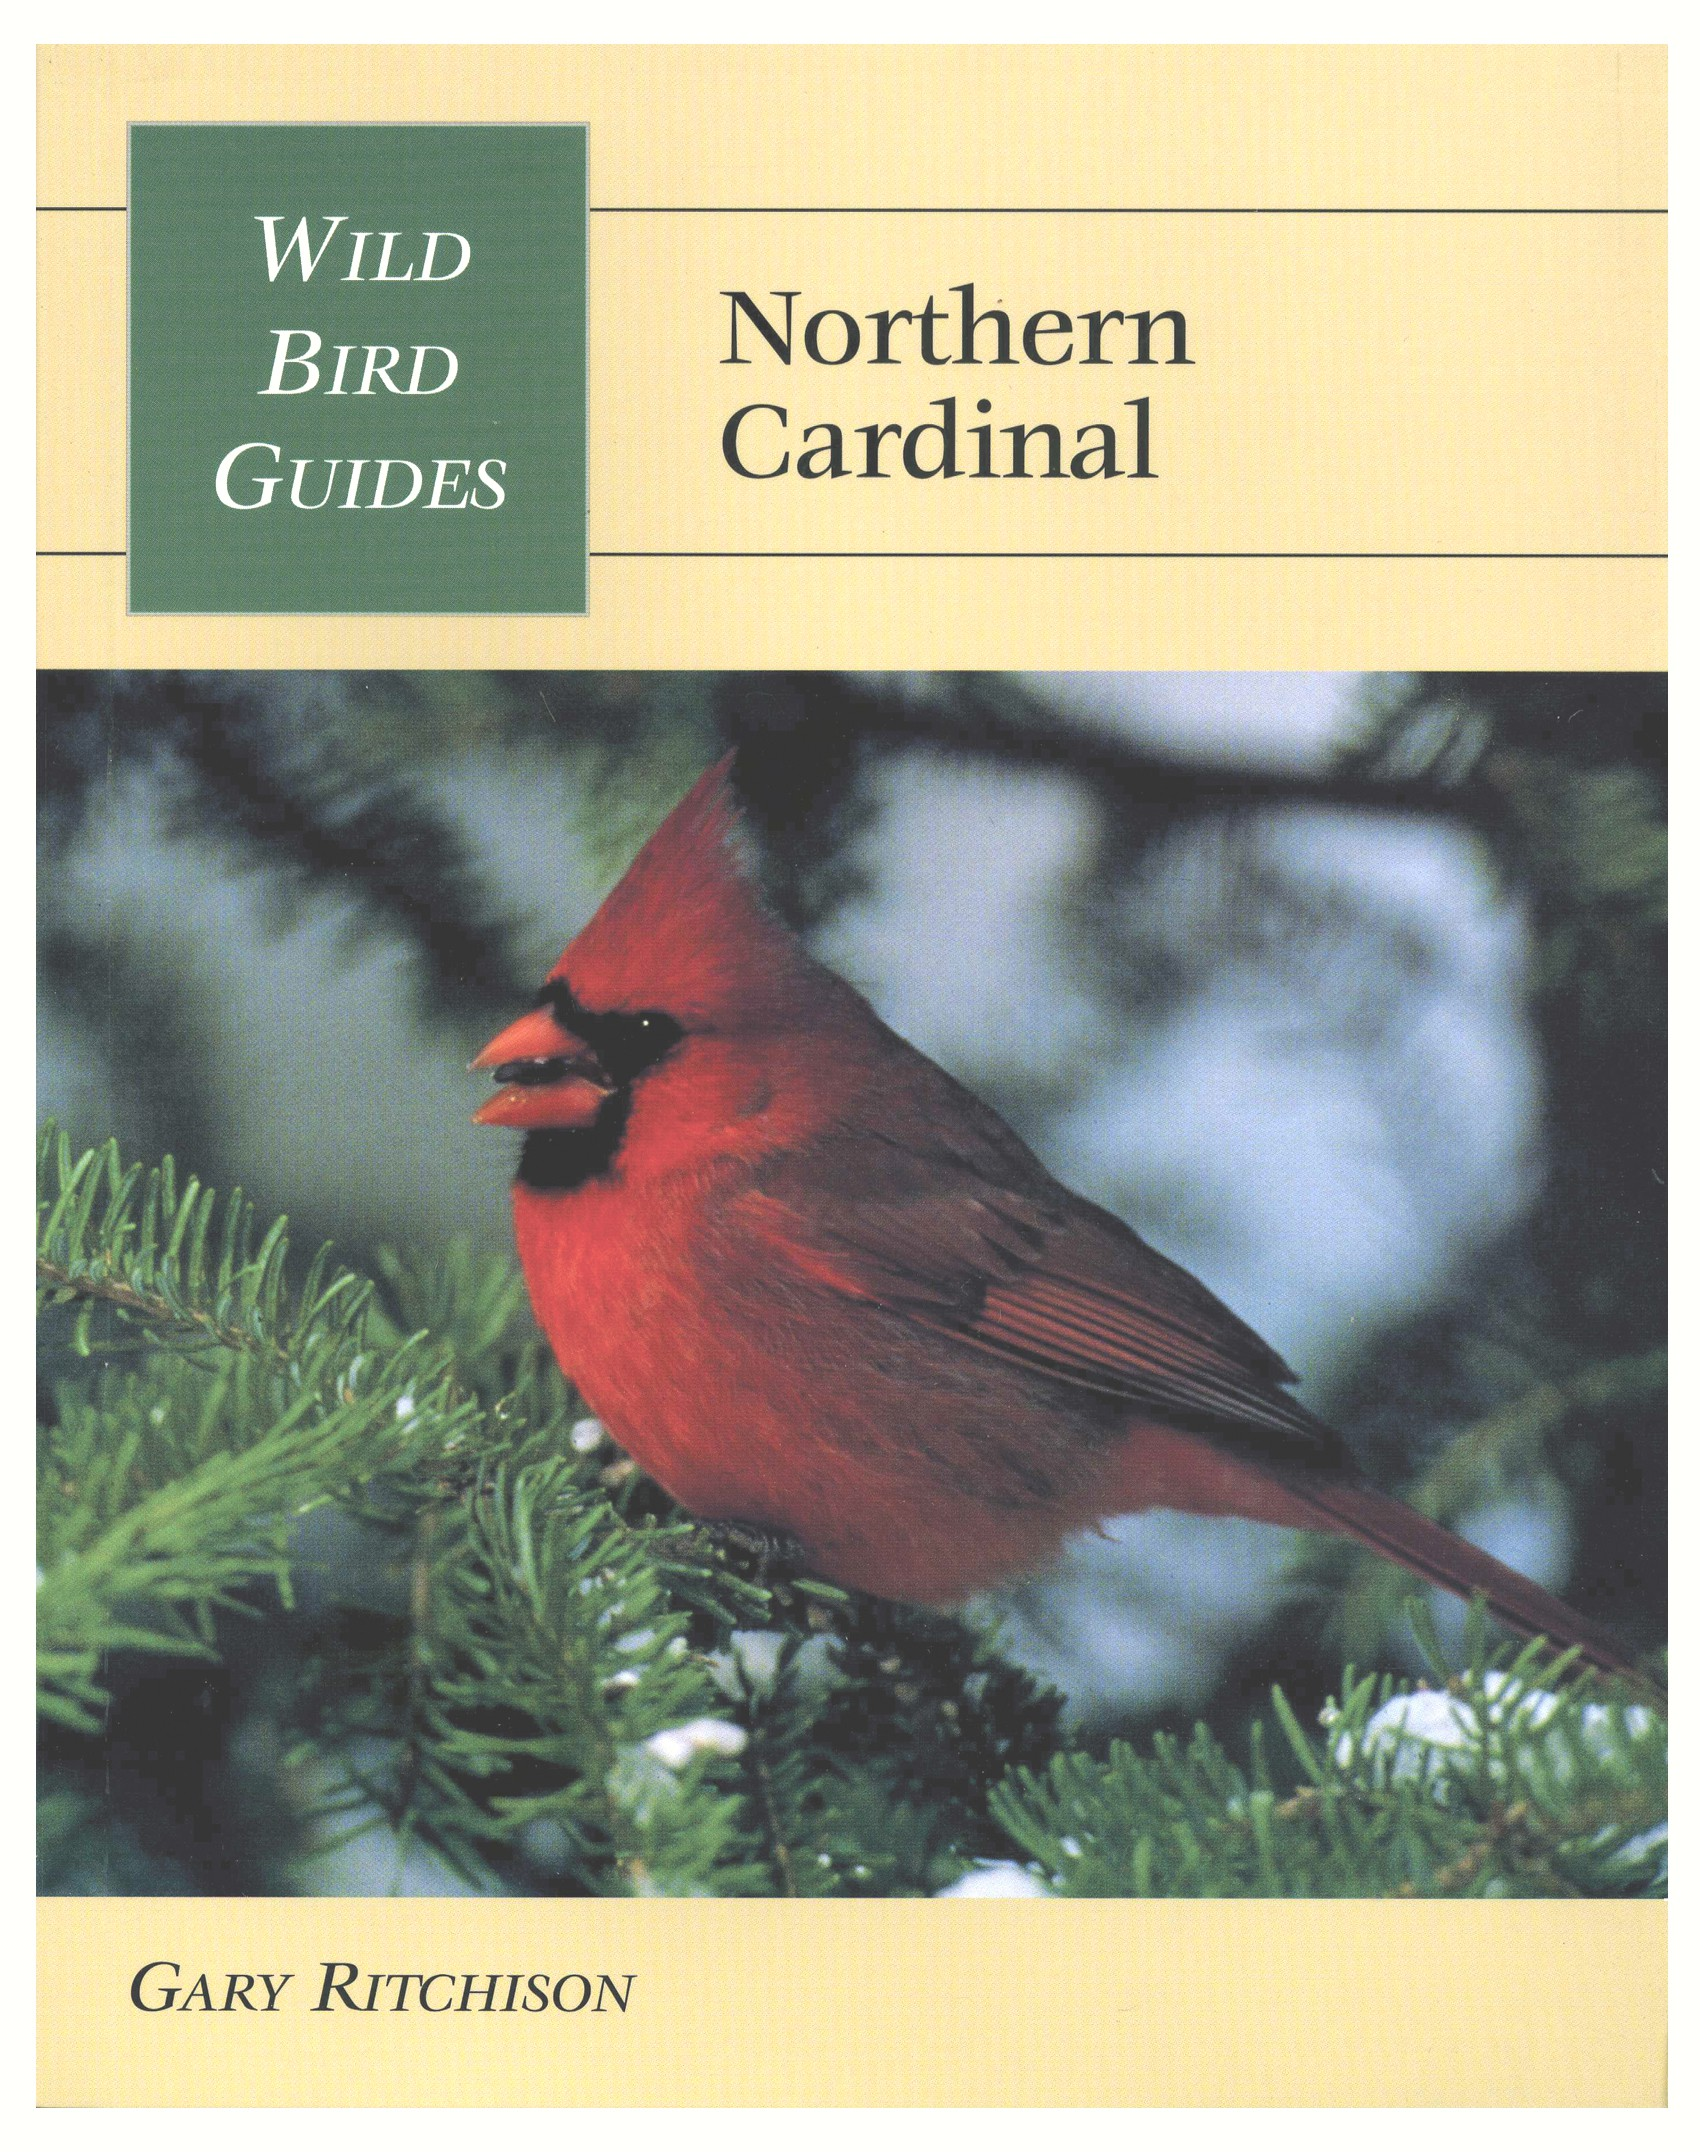 Wild Bird Guides Northern Cardinal